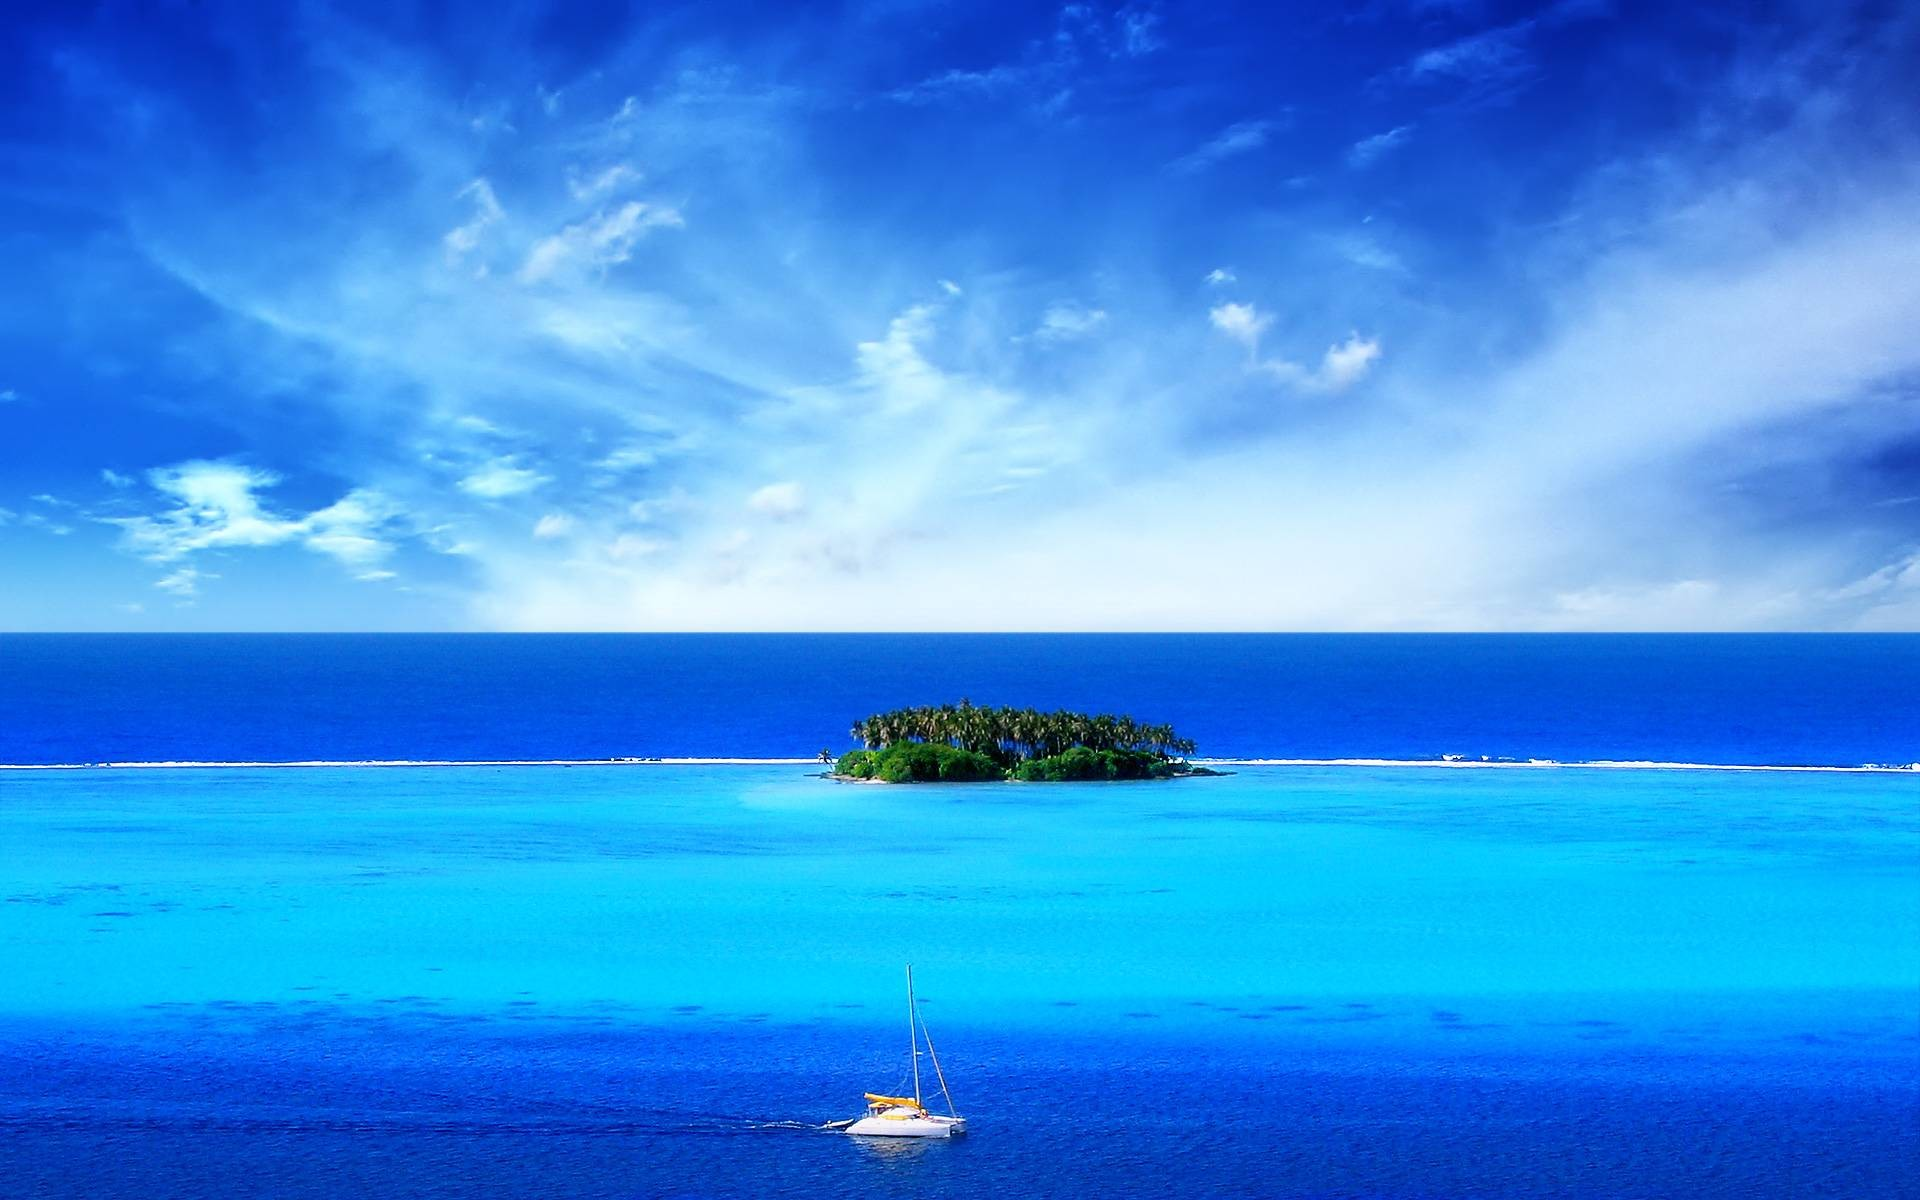 1920x1200 Perfect Island wallpaper for your